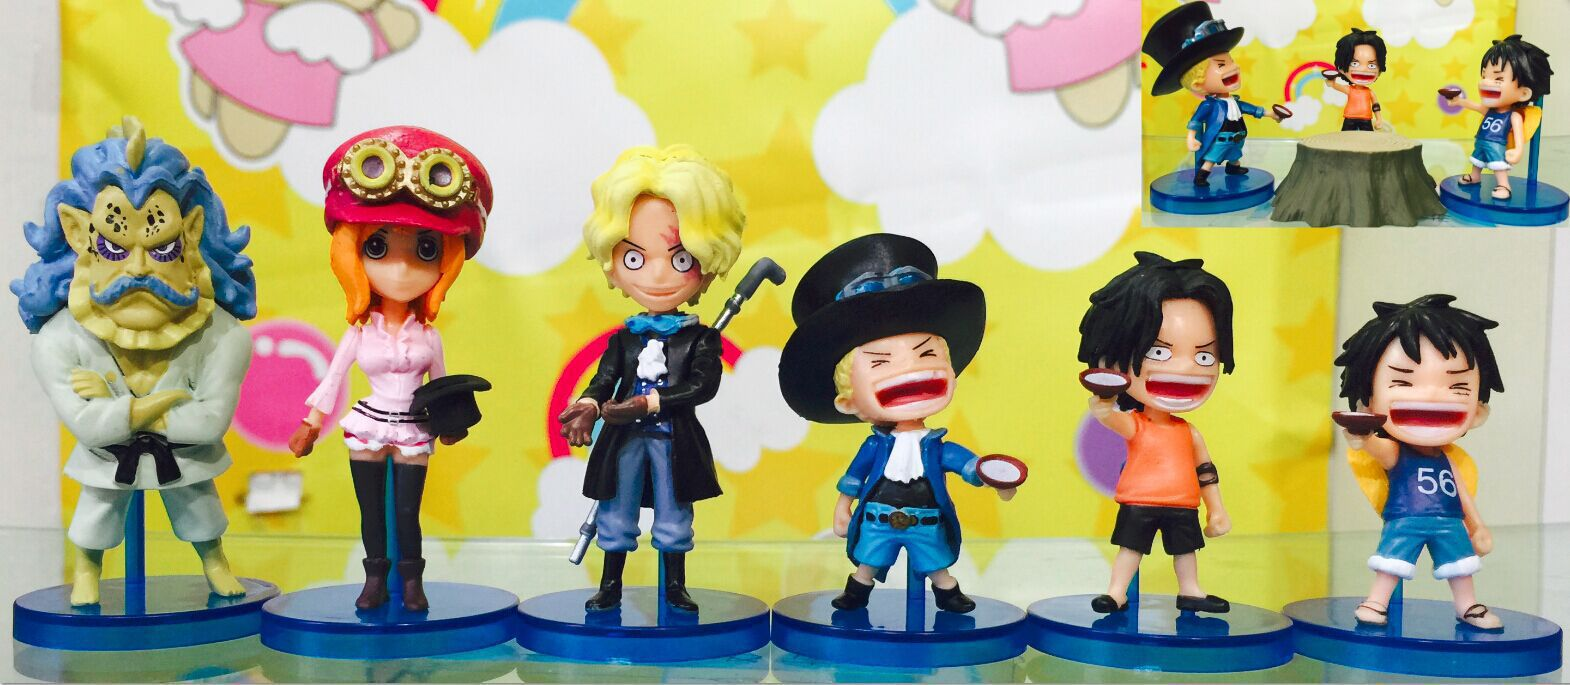 Anime Cartoon One Piece WCF HISTORY OF SABO PVC Action Figures Collectible Model Dolls Toys 6pcs/set KT472